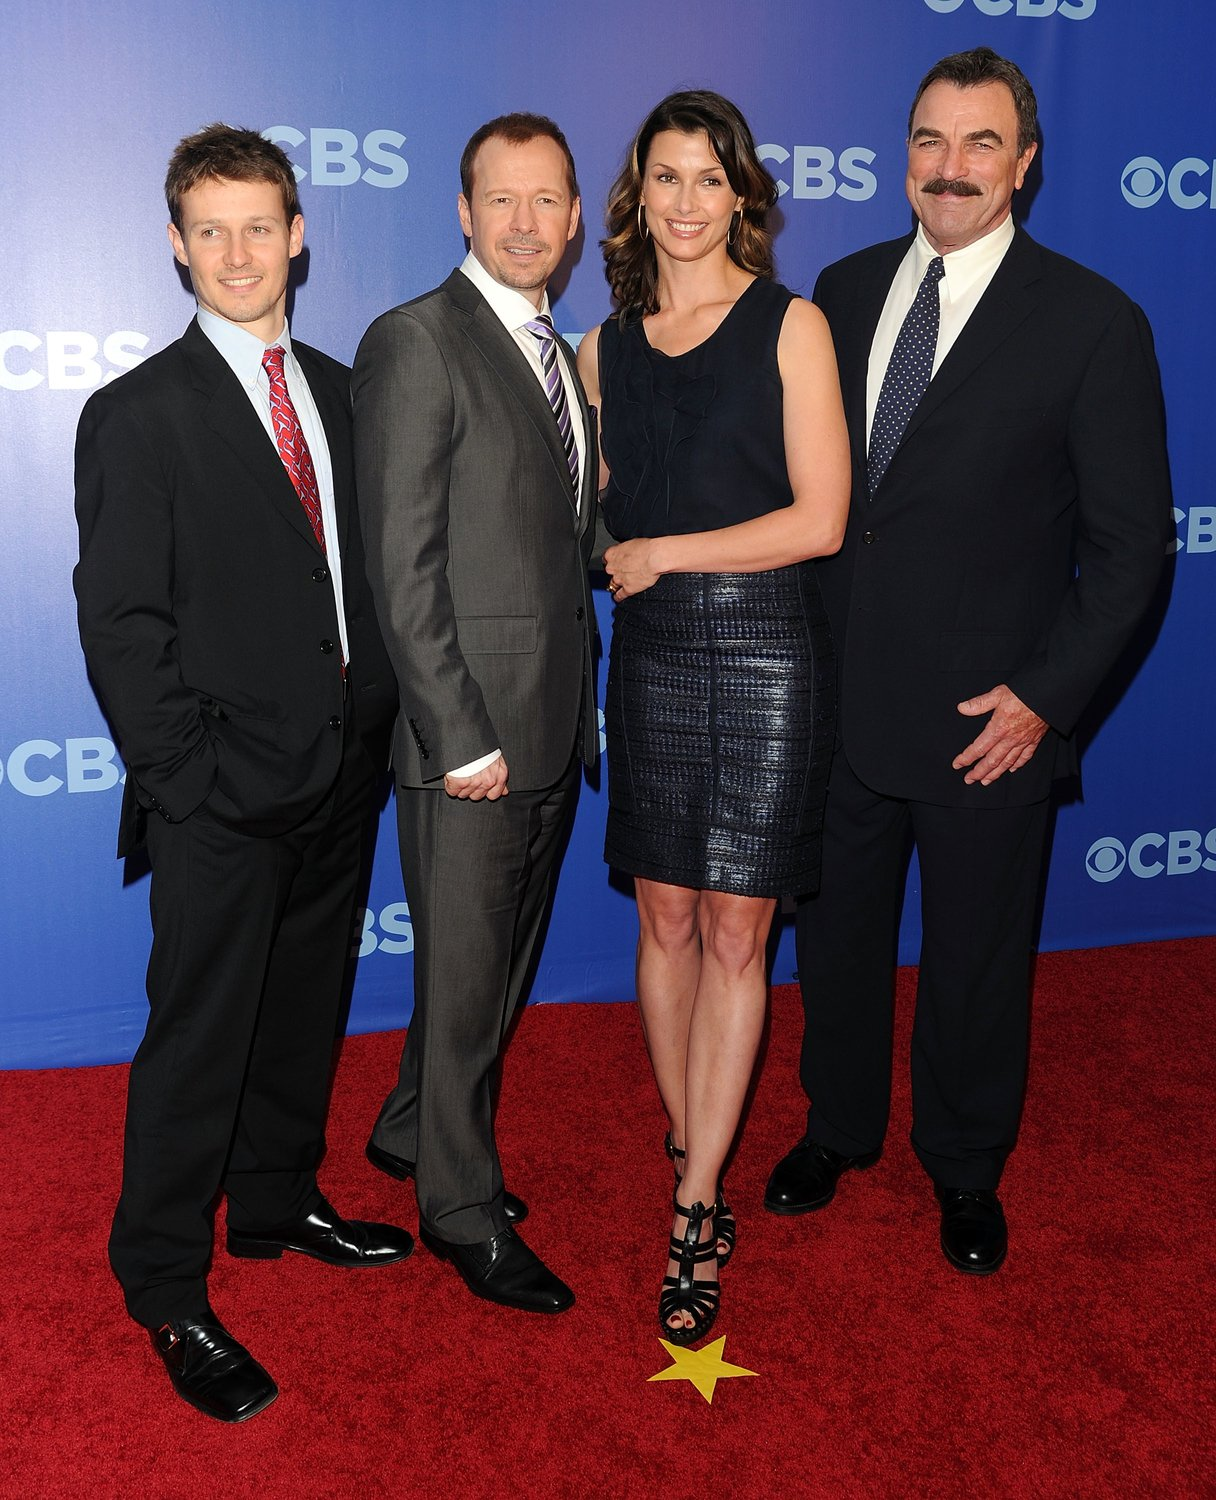 Will Estes, Donnie Wahlberg, Bridget Moynahan and Tom Selleck attend the 2010 CBS UpFront at Damrosch Park, Lincoln Center on May 19, 2010 in New York City | Photo: GettyImages